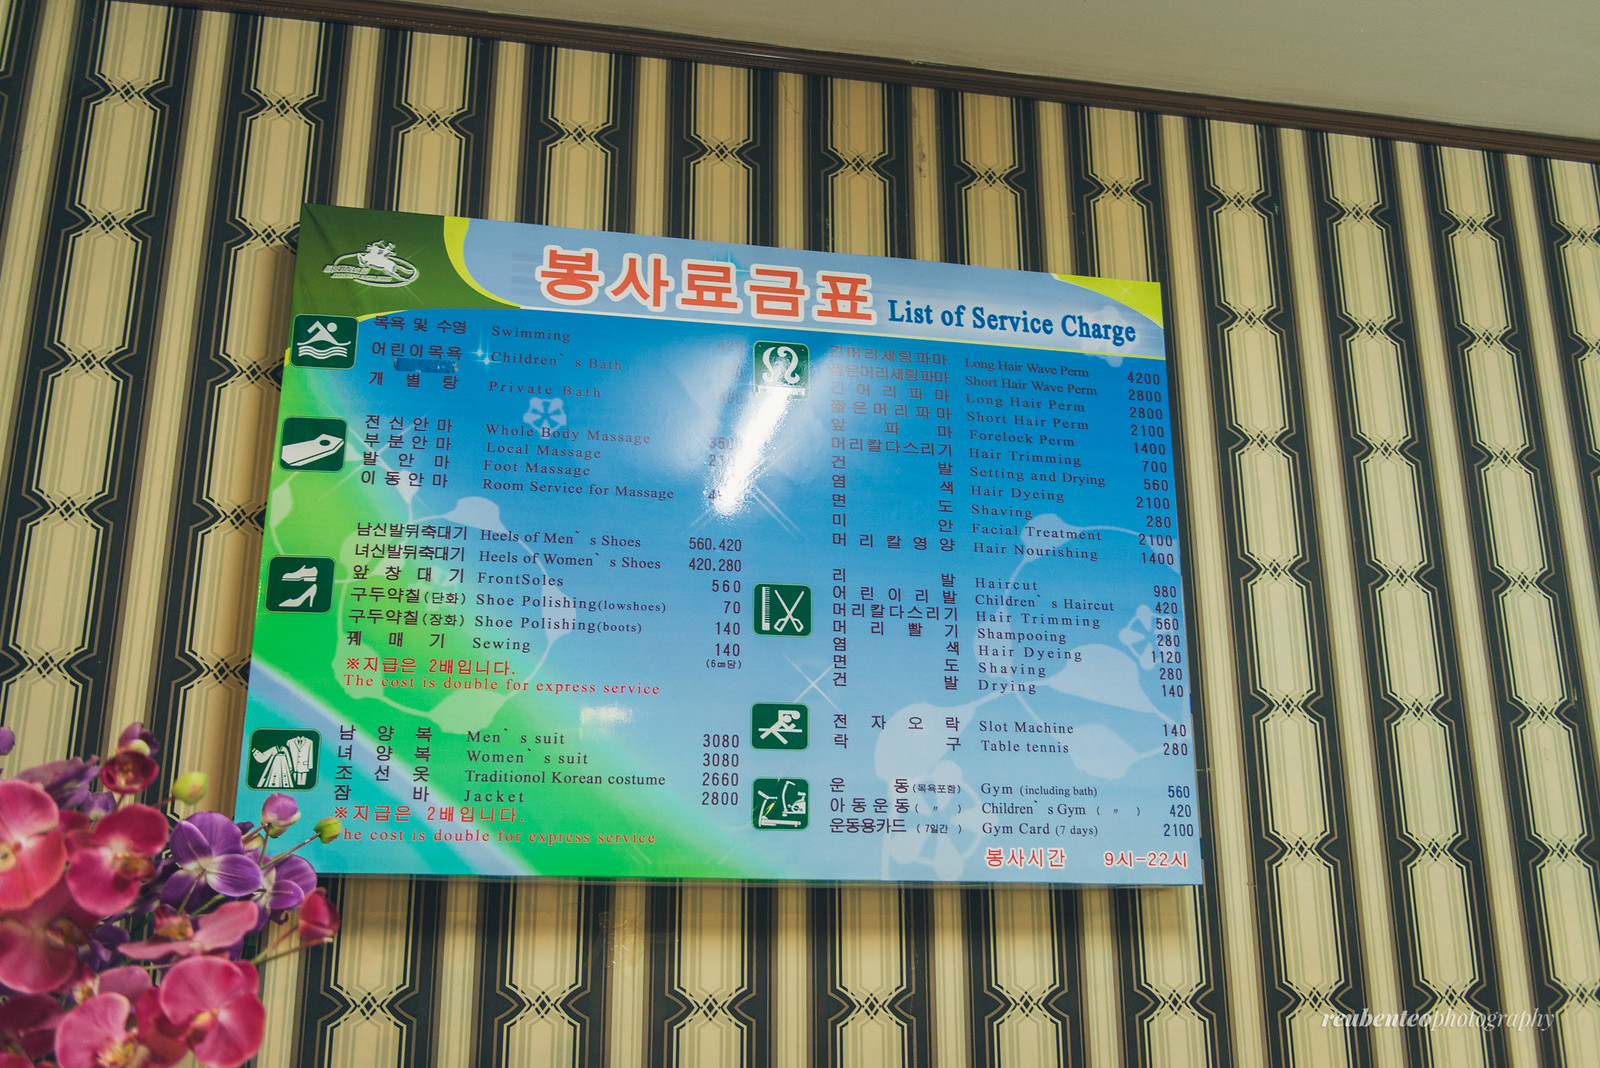 Facilities Board